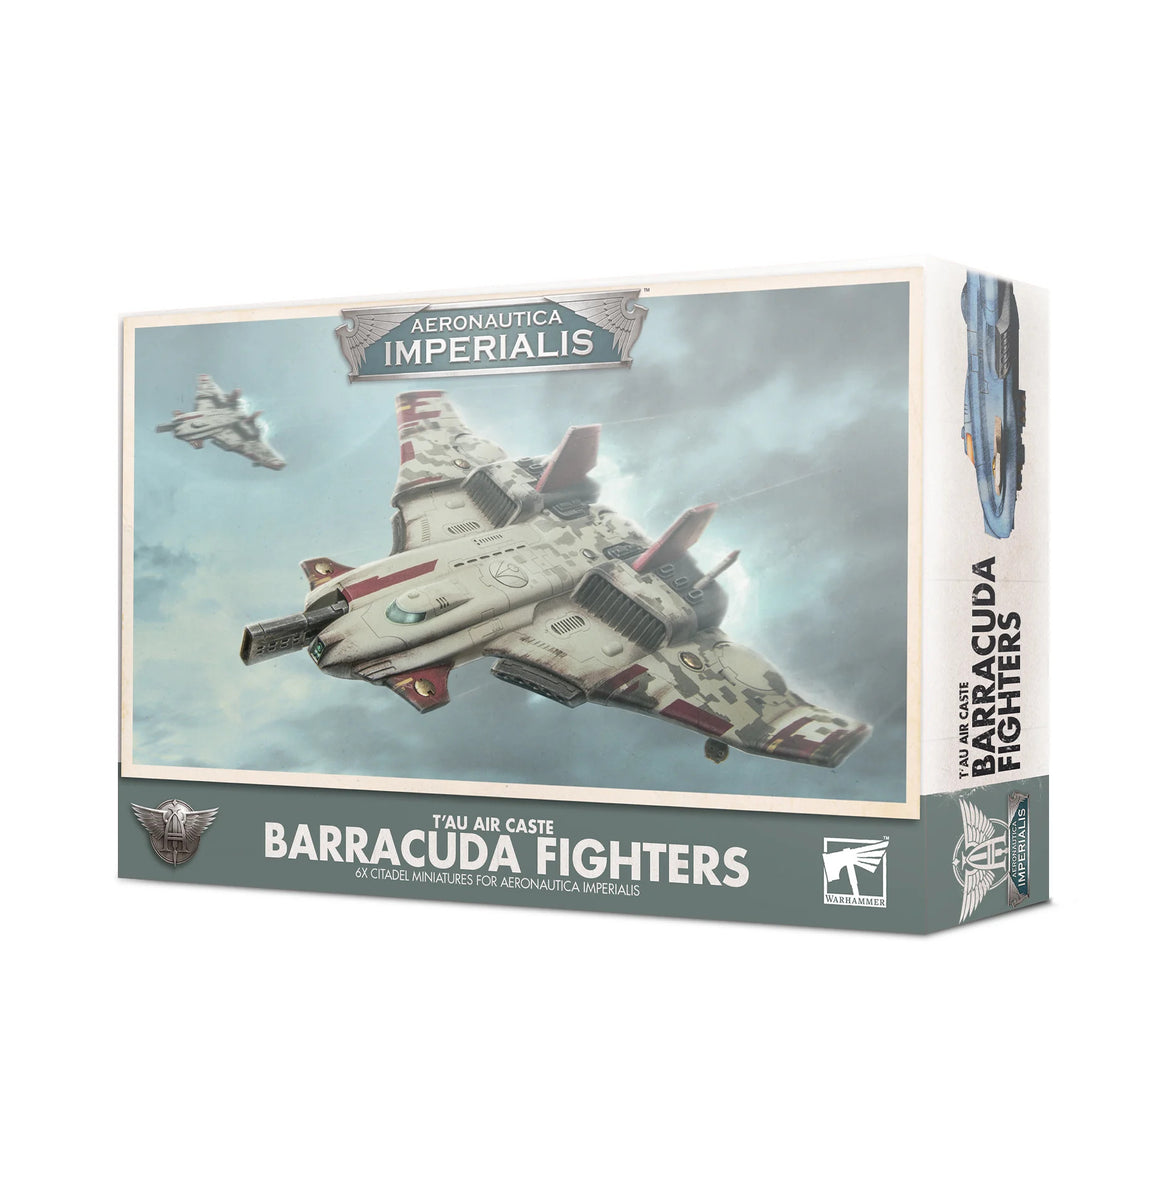 Aeronautica Imperialis Tau Air Caste Barracuda Fighters